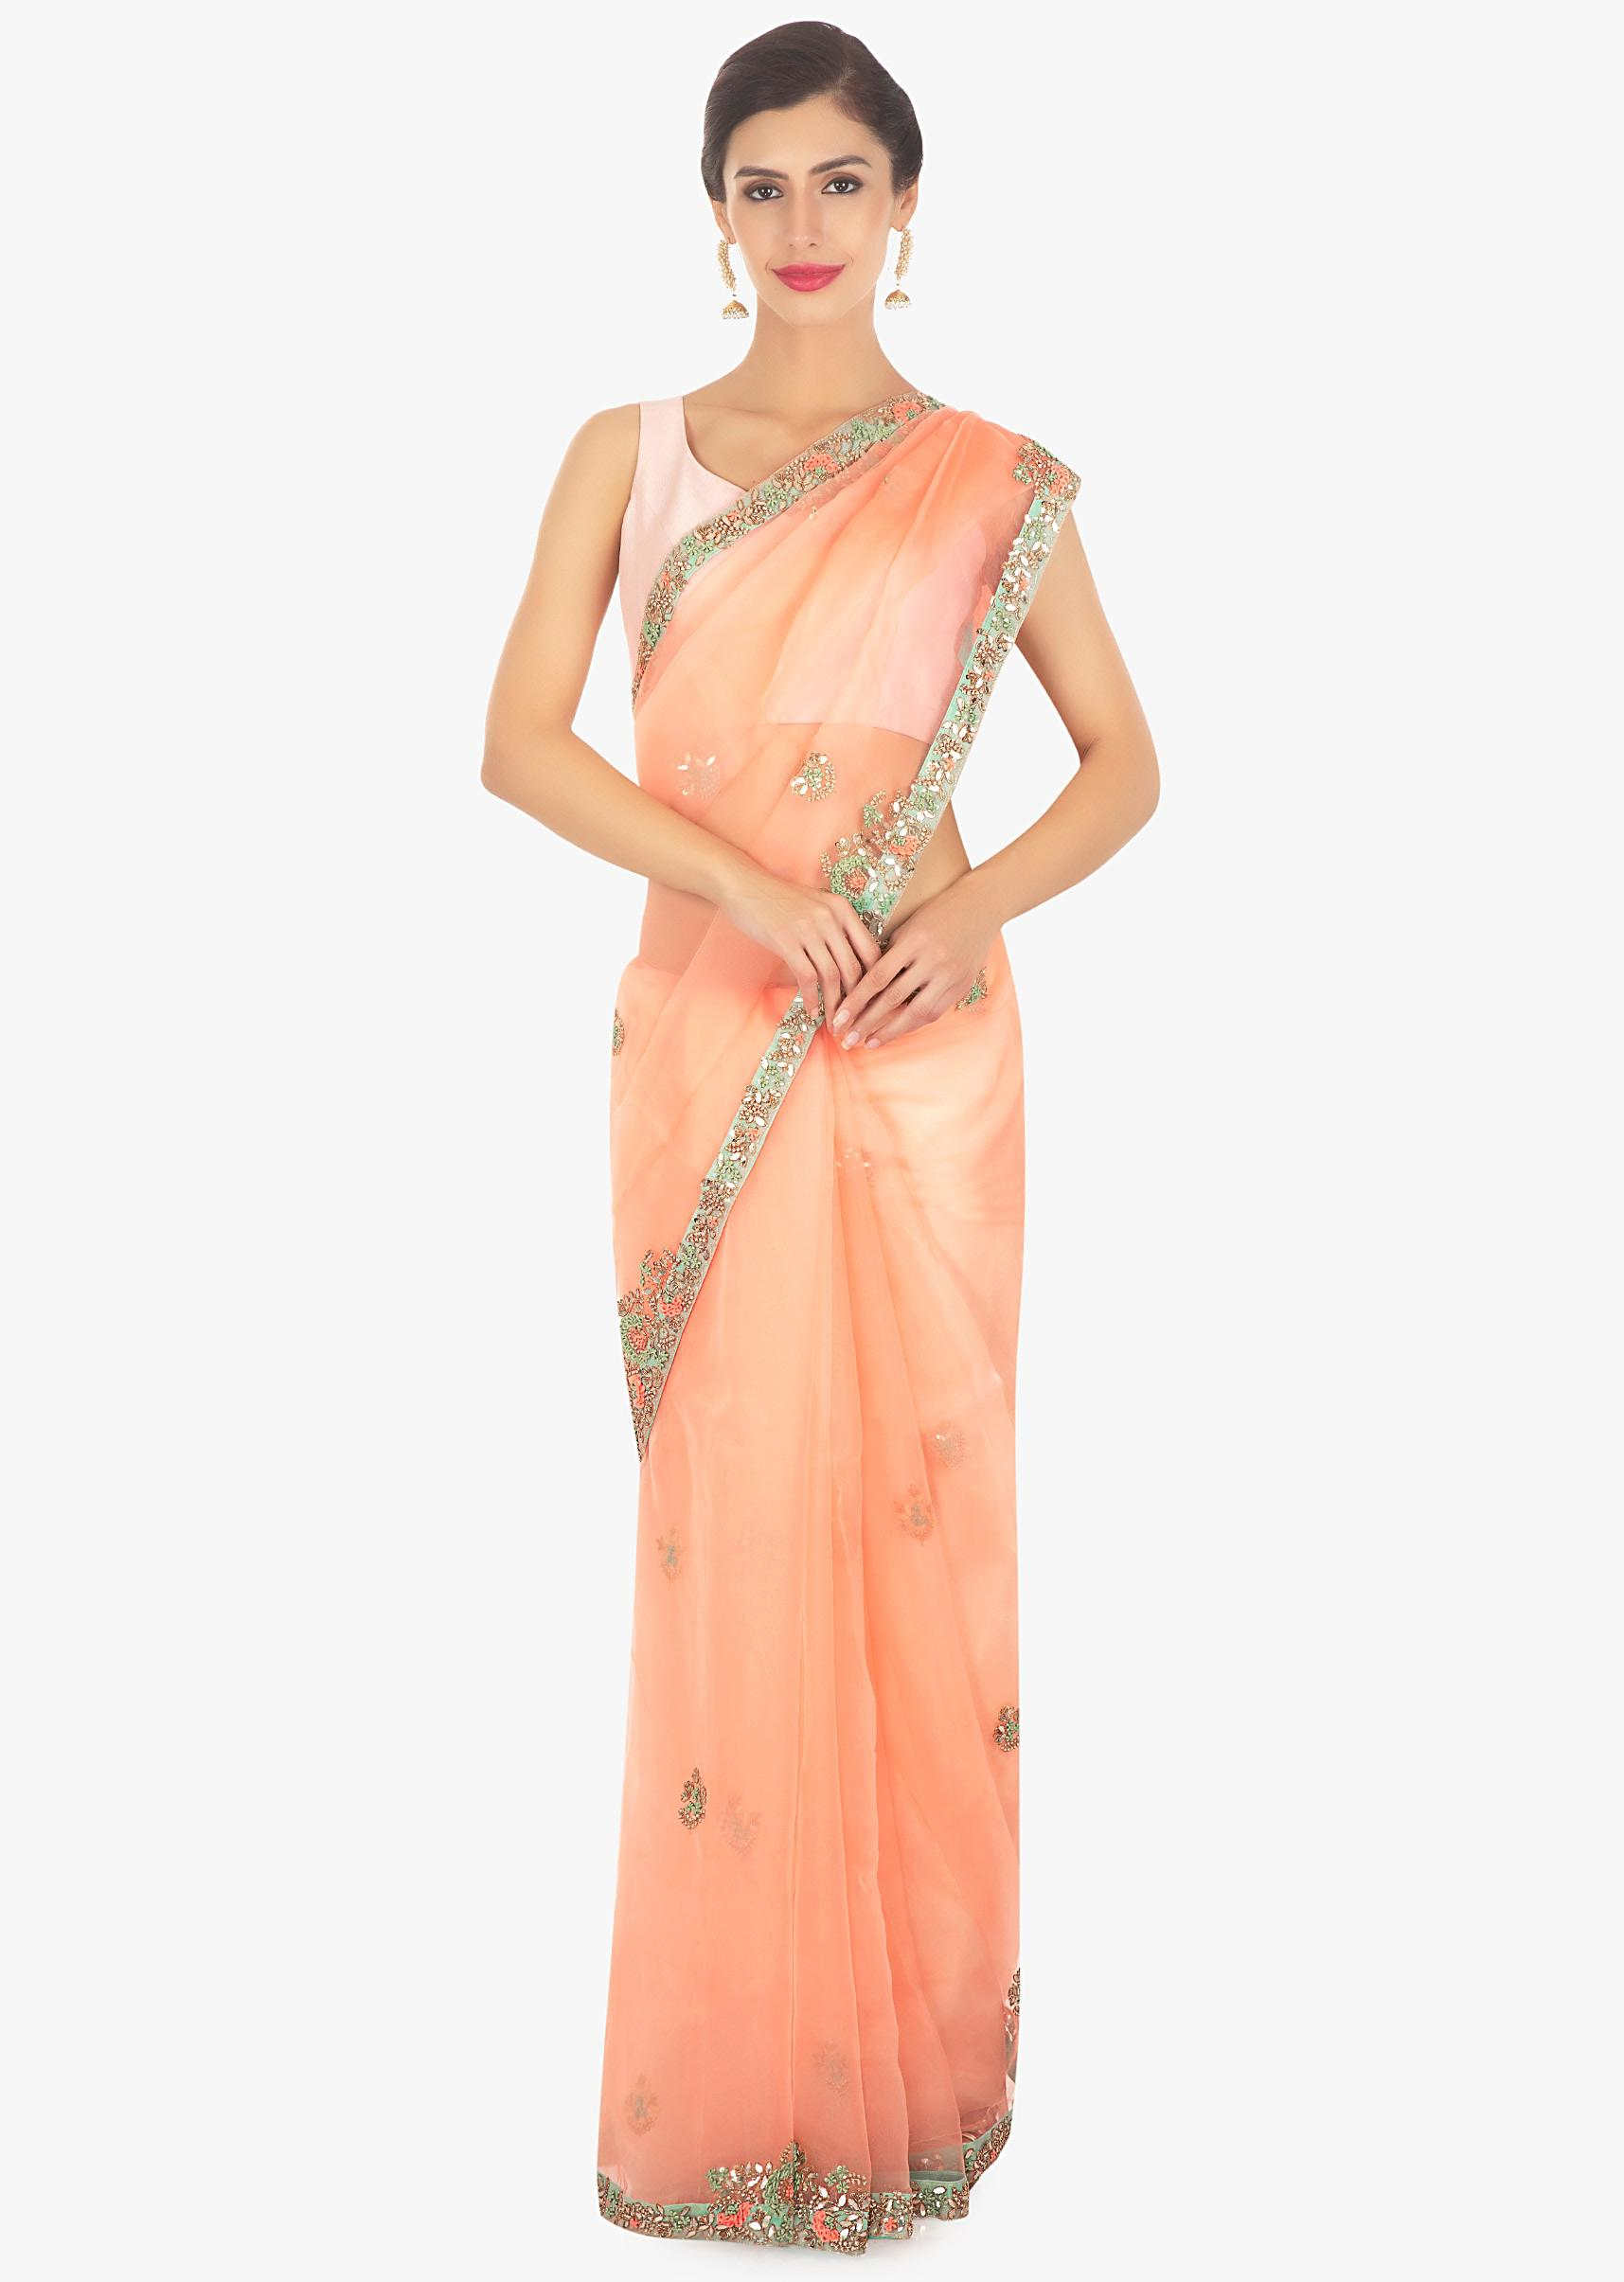 52070db26f Peach organza saree in embroidered butti and border only on KalkiMore Detail